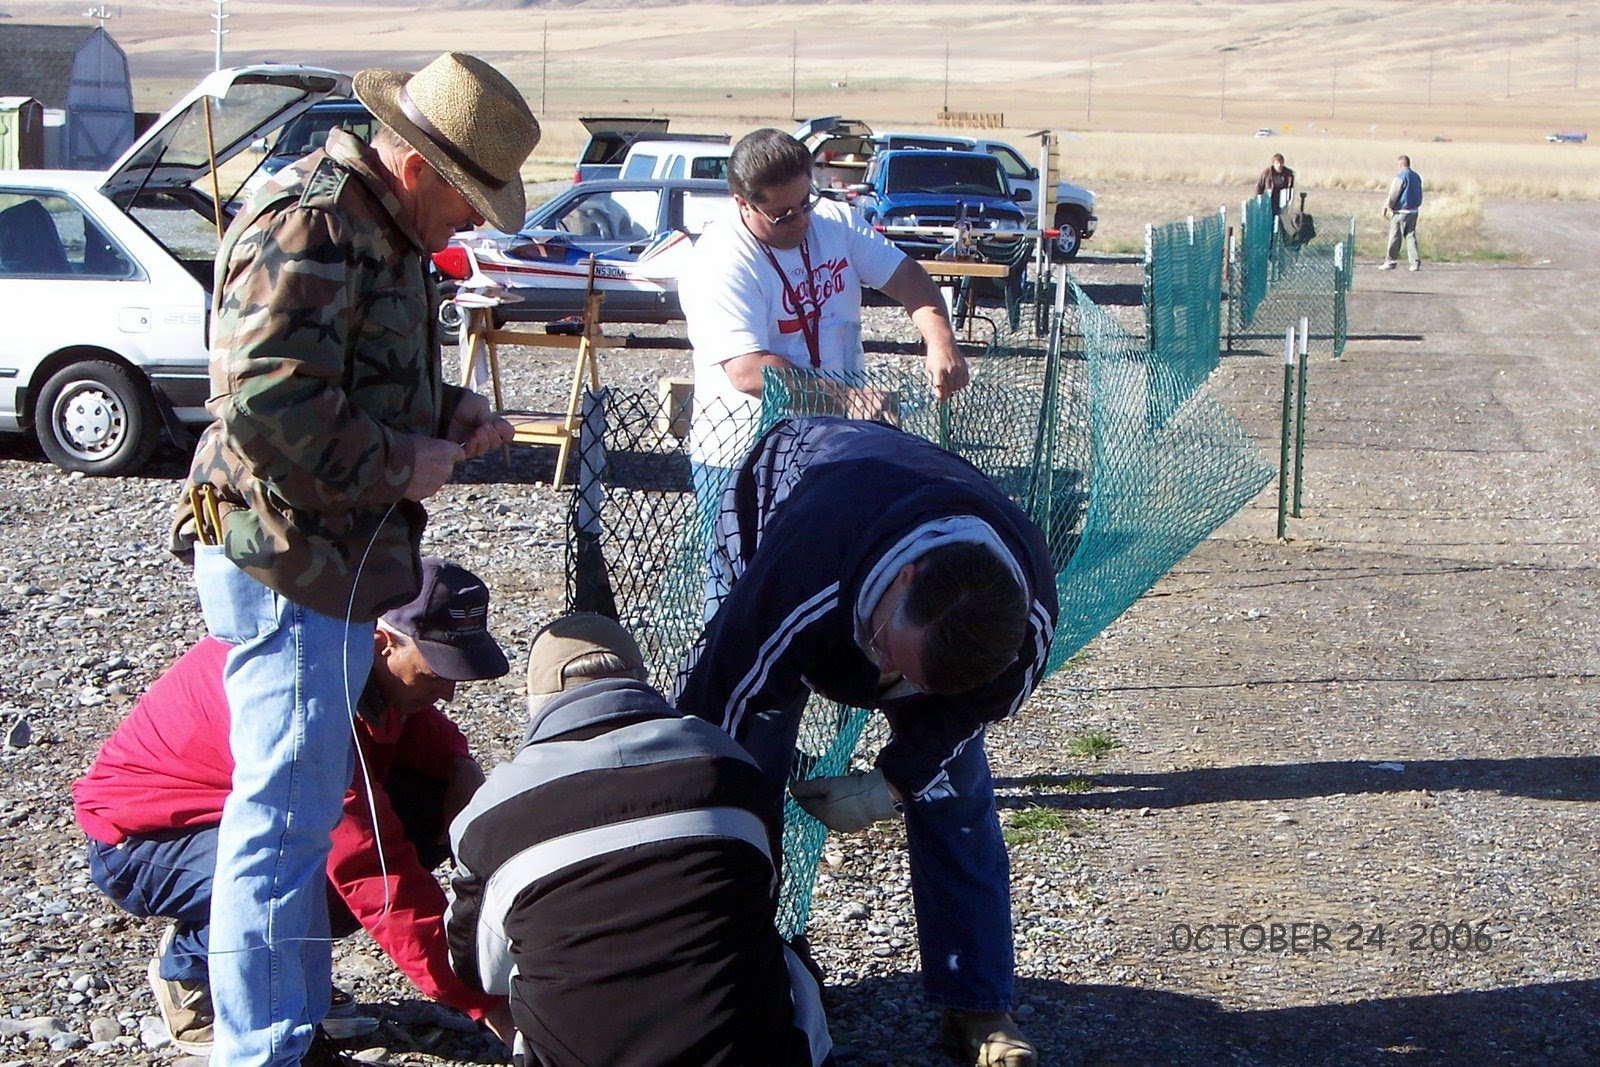 SECURING SAFETY FENCE MATERIAL. PALMER,STUART, WILLIAMS, SMITH, NELSEN. OCTOBER 24 2006